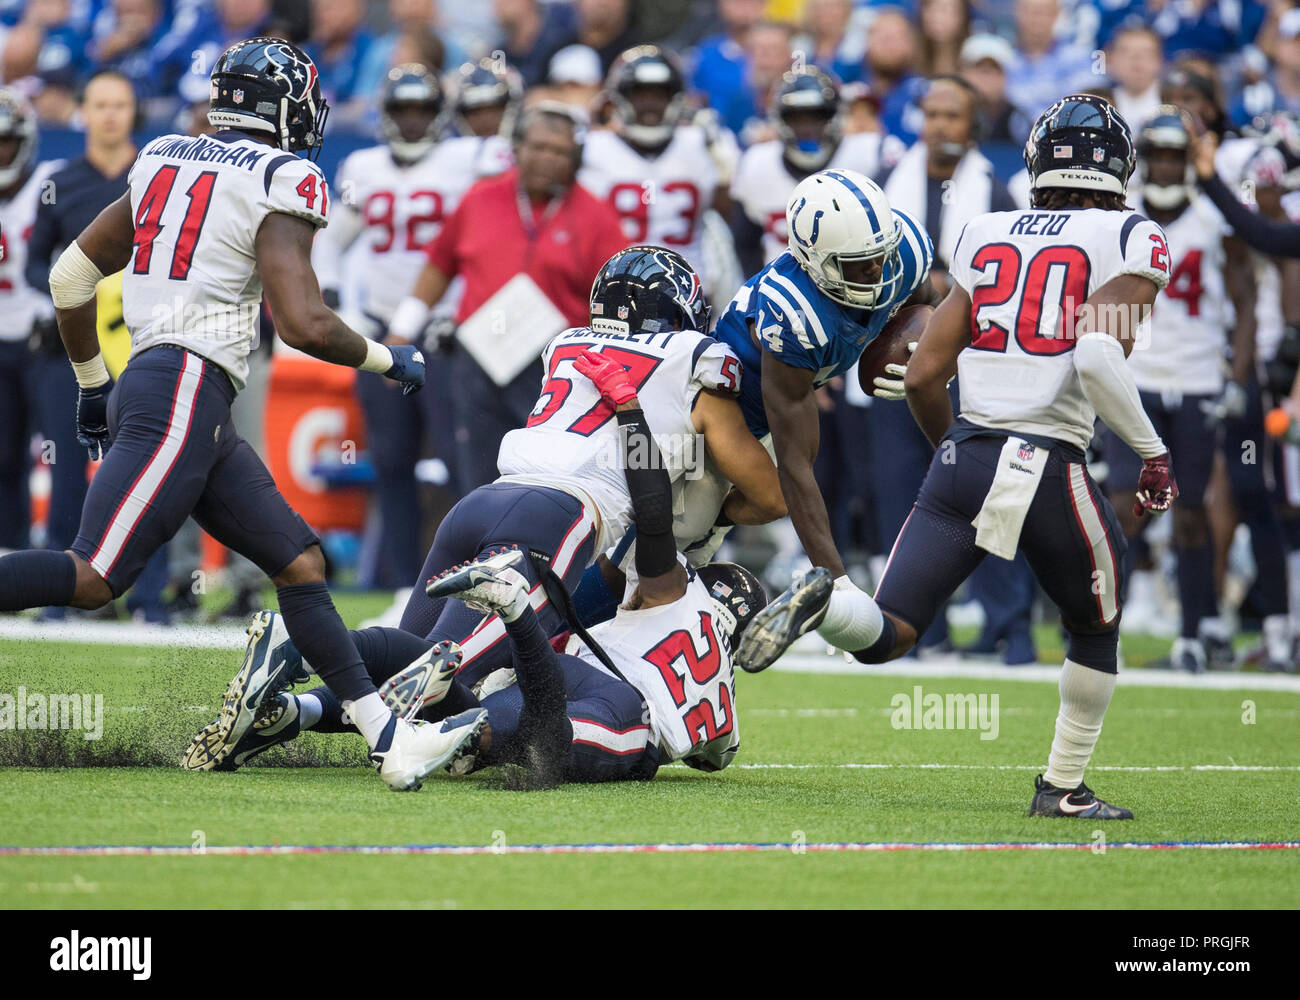 September 30, 2018: Houston Texans linebacker Brennan Scarlett (57) and Houston Texans defensive back Aaron Colvin (22) tackle Indianapolis Colts wide receiver Zach Pascal (14) during NFL football game action between the Houston Texans and the Indianapolis Colts at Lucas Oil Stadium in Indianapolis, Indiana. Houston defeated Indianapolis 37-34 in overtime. John Mersits/CSM. - Stock Image